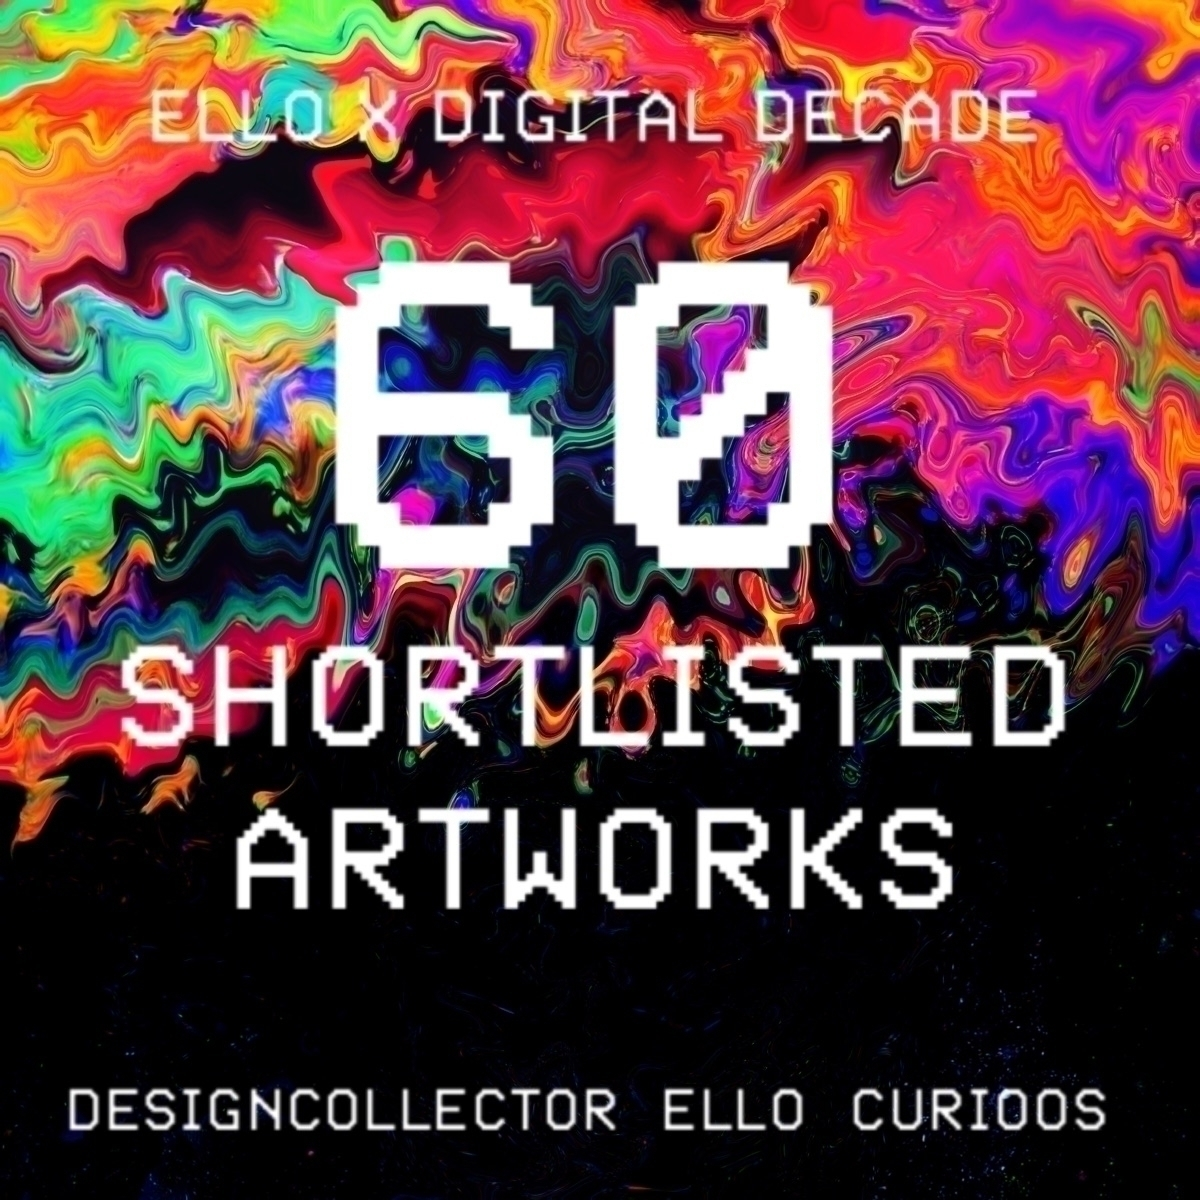 sleepless nights selected 60 Ar - digitaldecade | ello